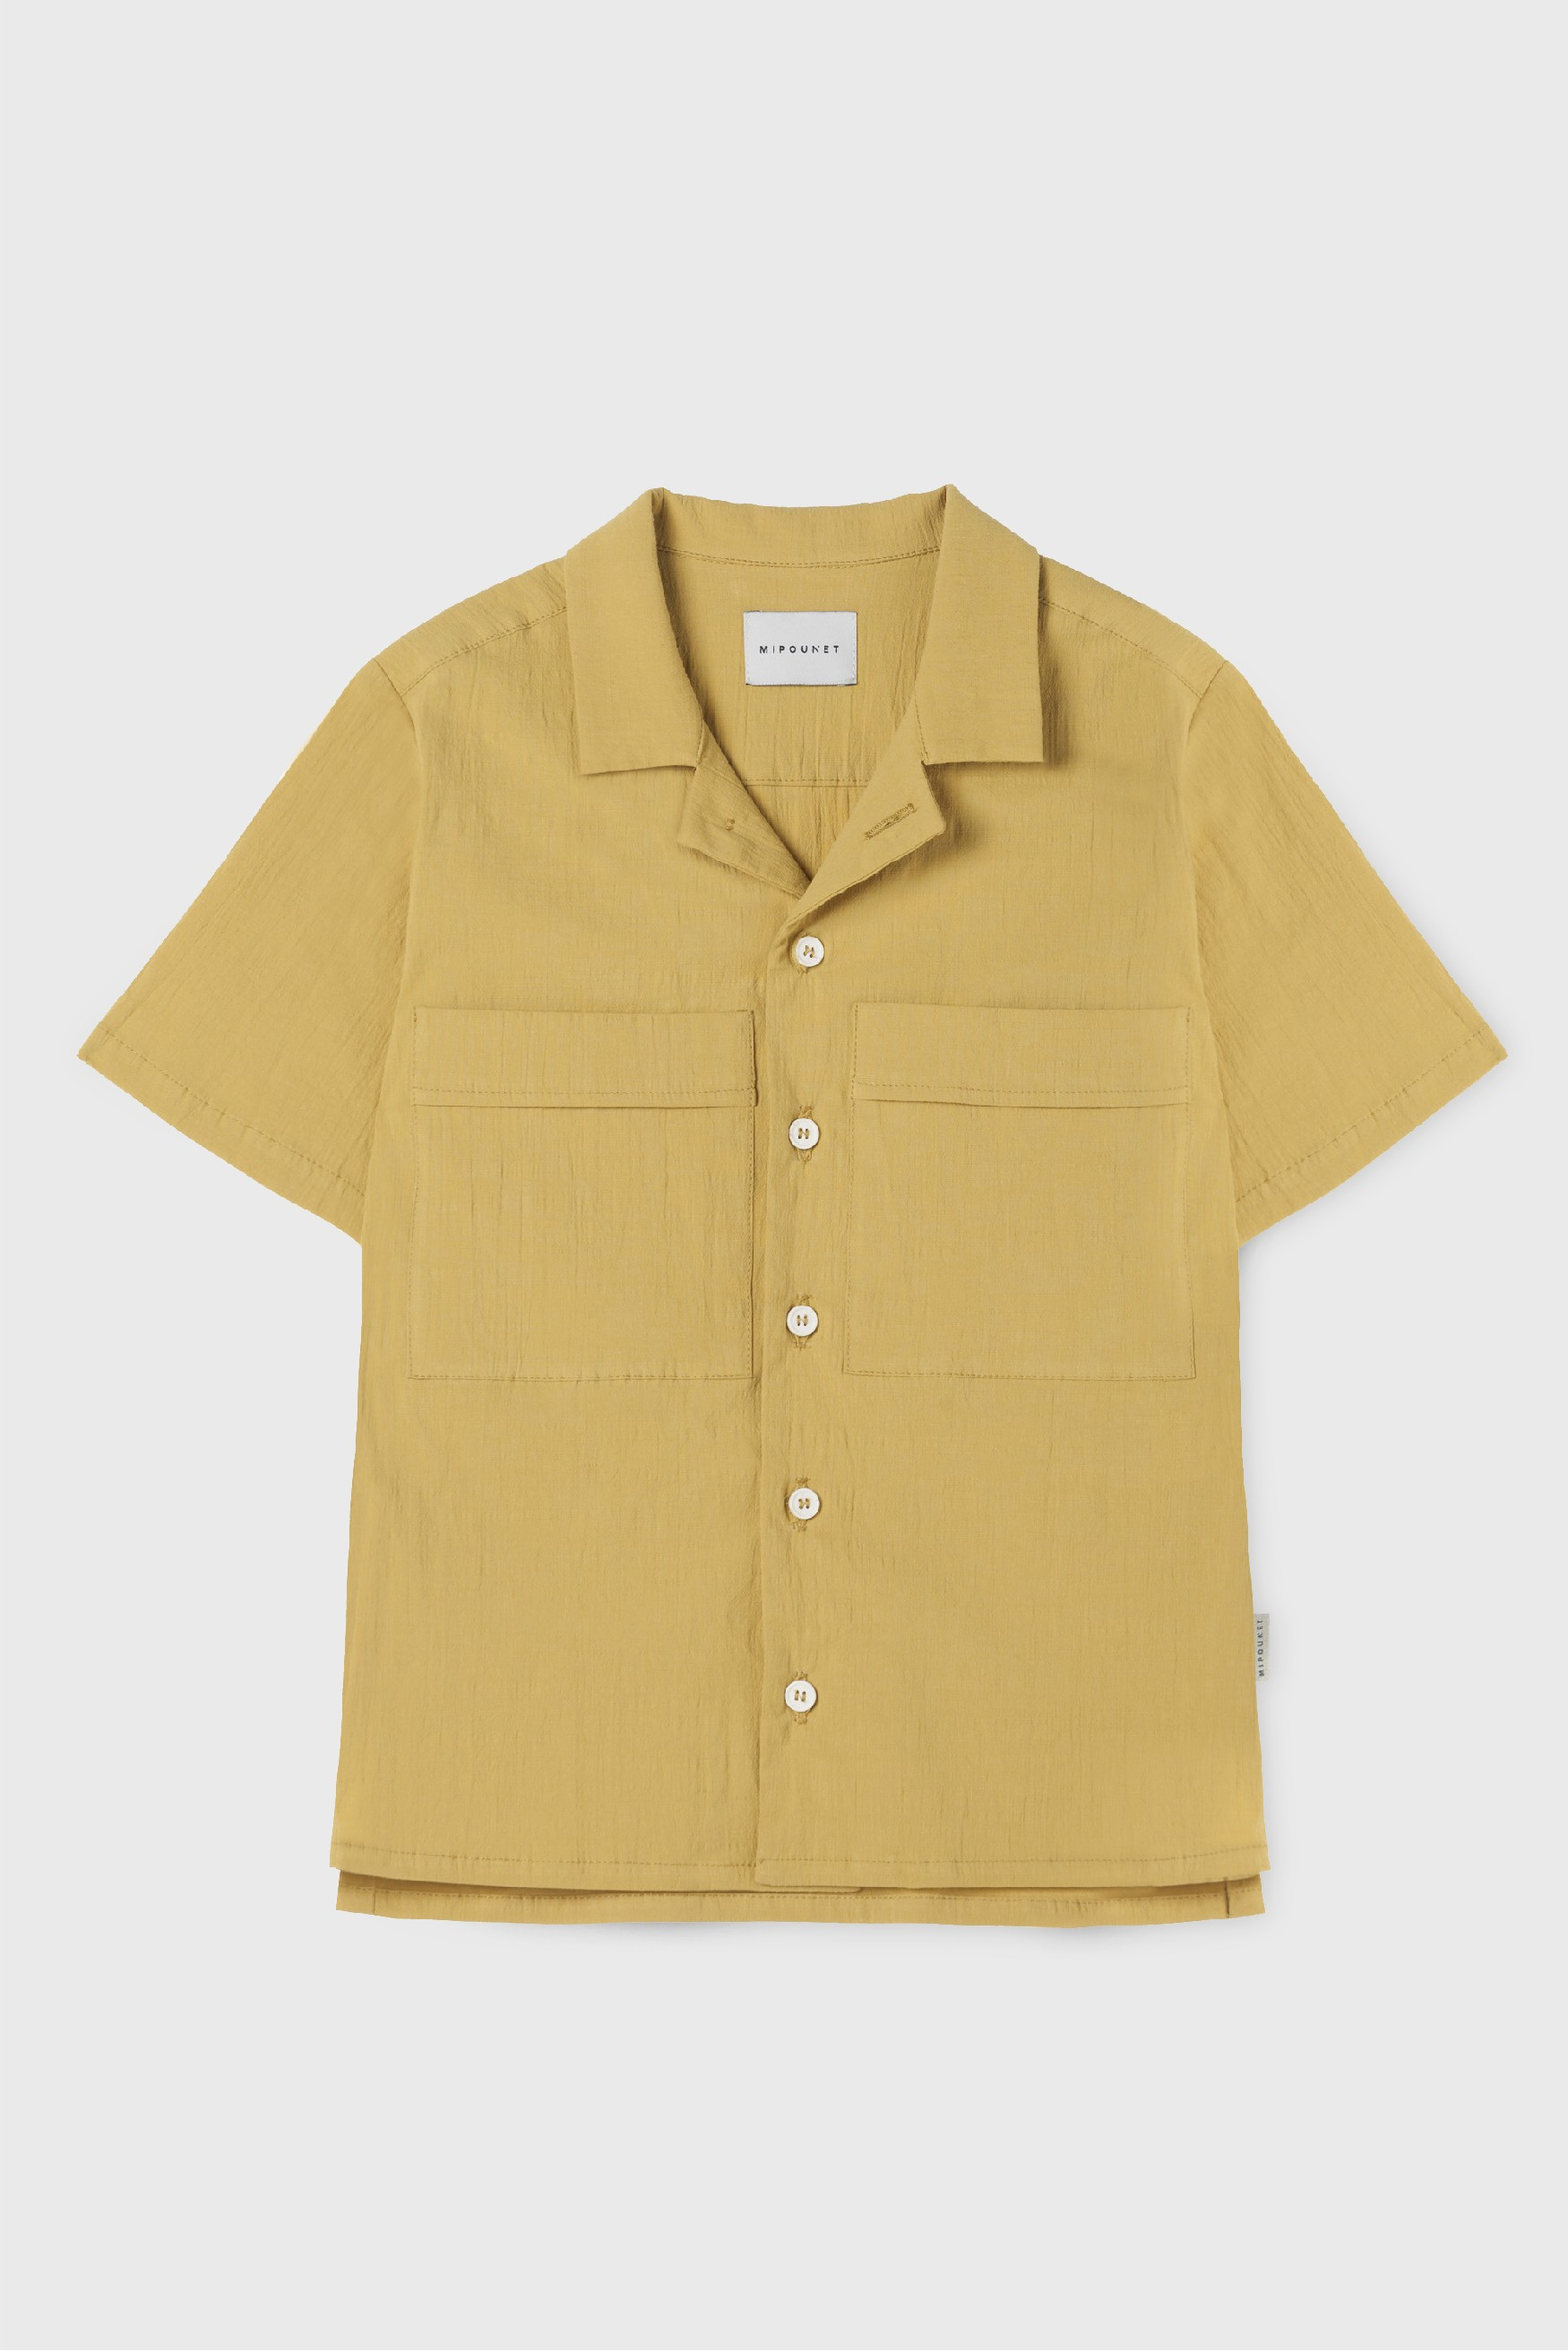 YELLOW VINTAGE POPELIN FRISÉE SHIRT